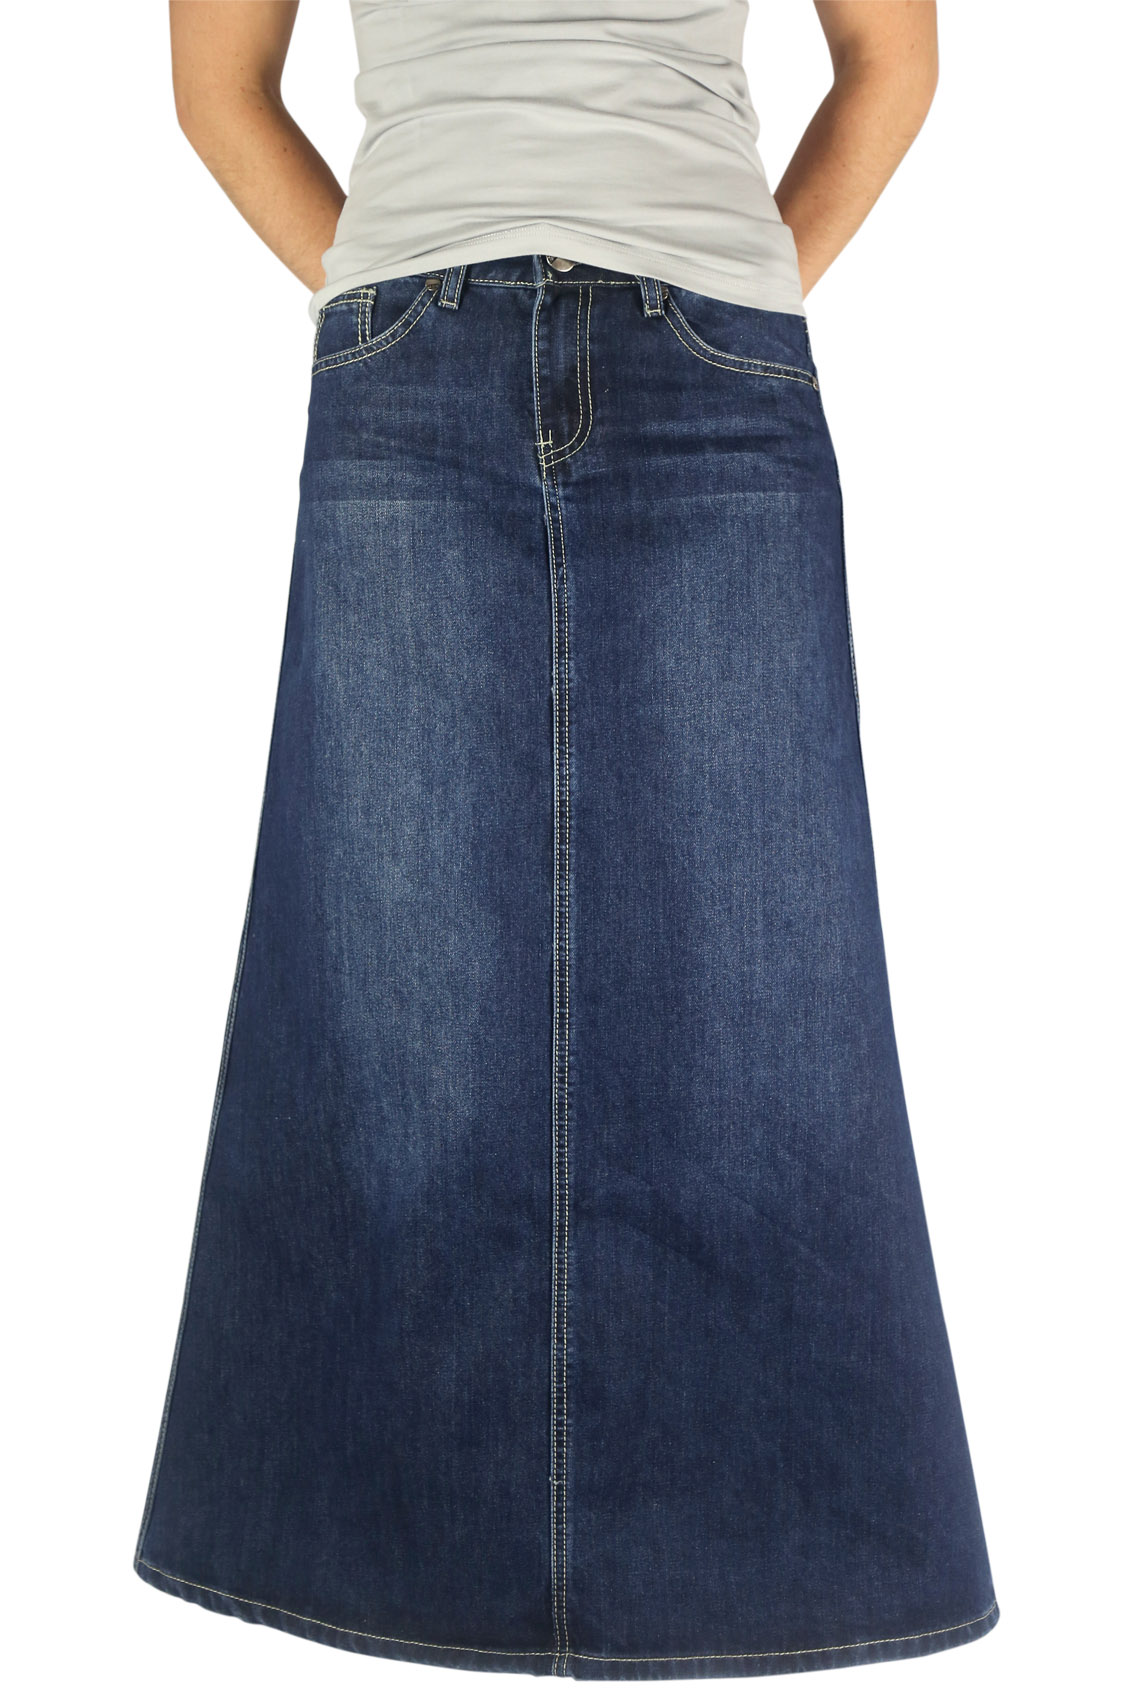 16 best Long denim skirts to wear with boots images on ... |Western Long Denim Skirts Modest